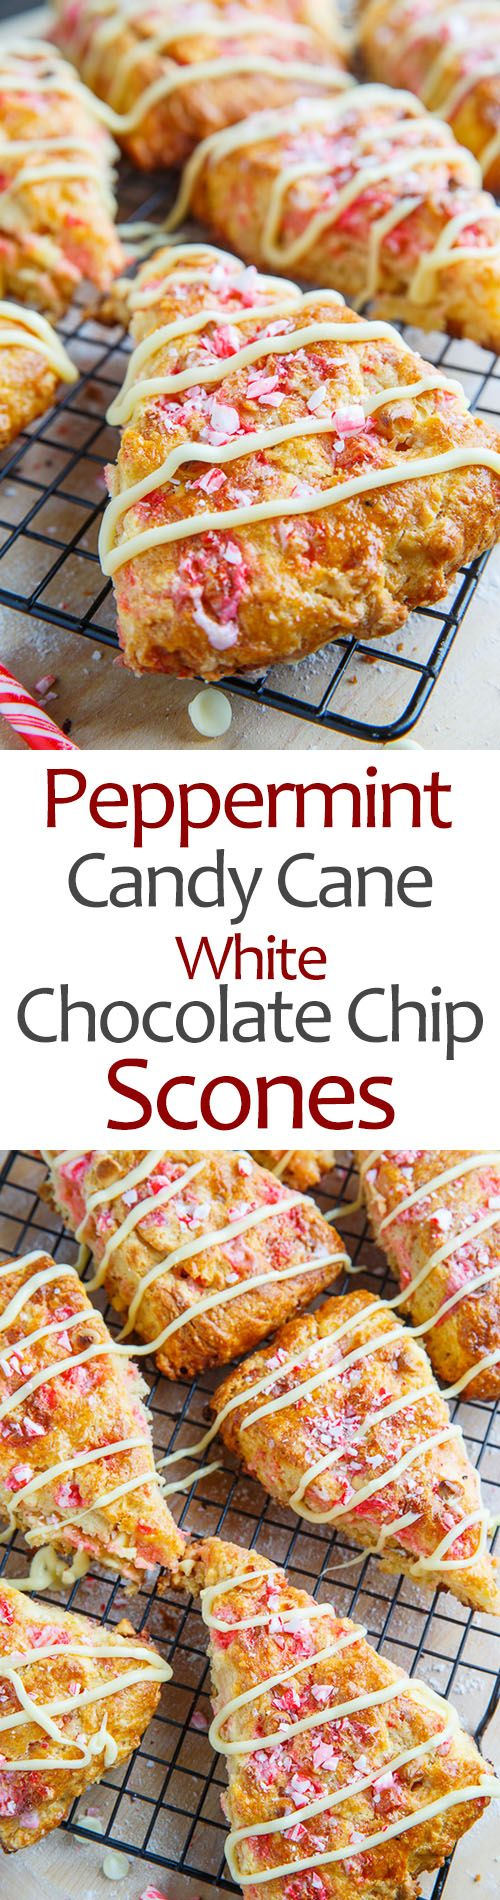 Peppermint Candy Cane and White Chocolate Chip Scones